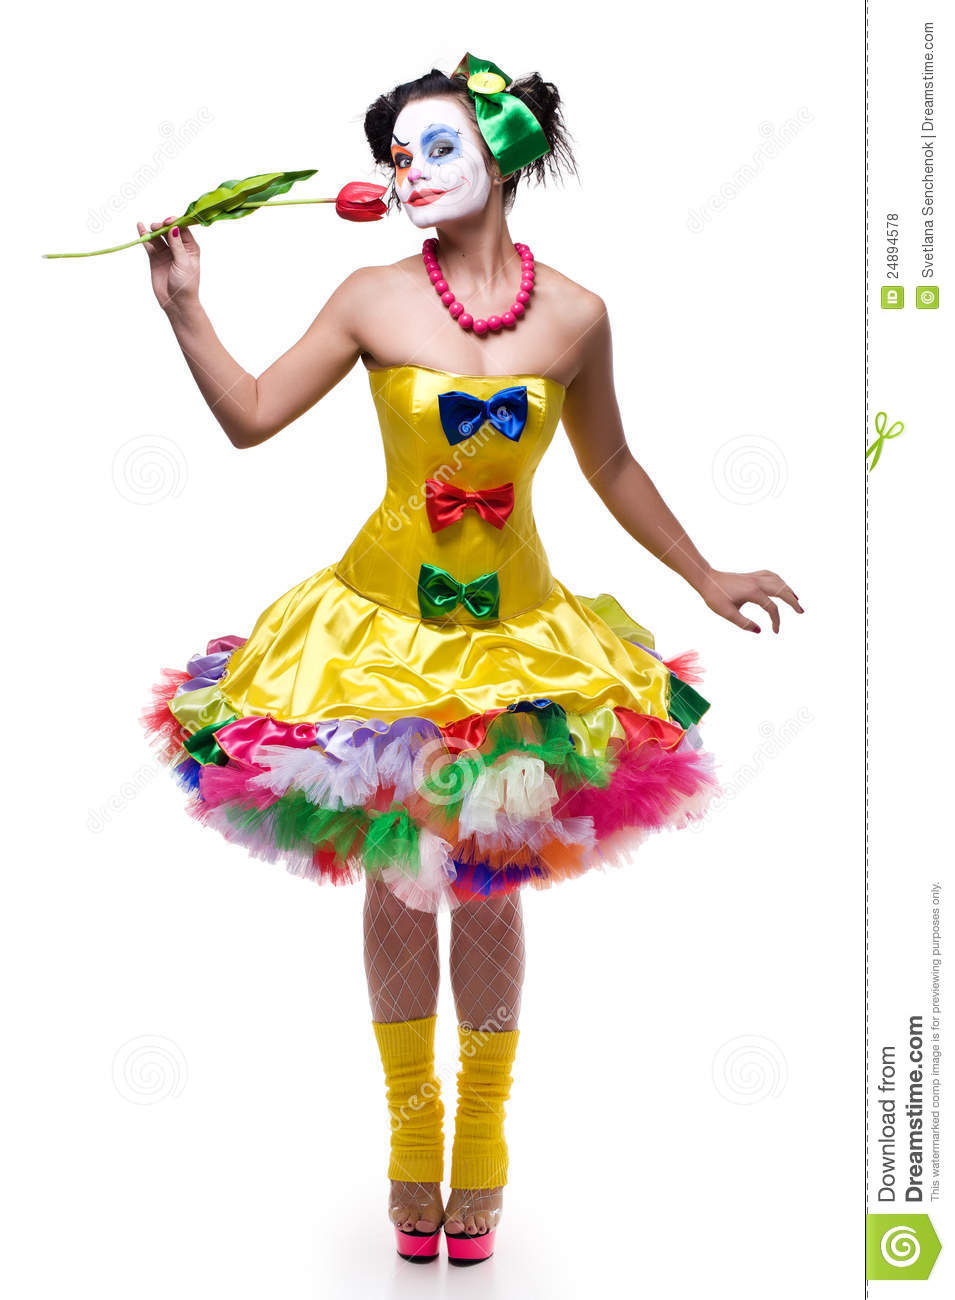 Clown costume cute